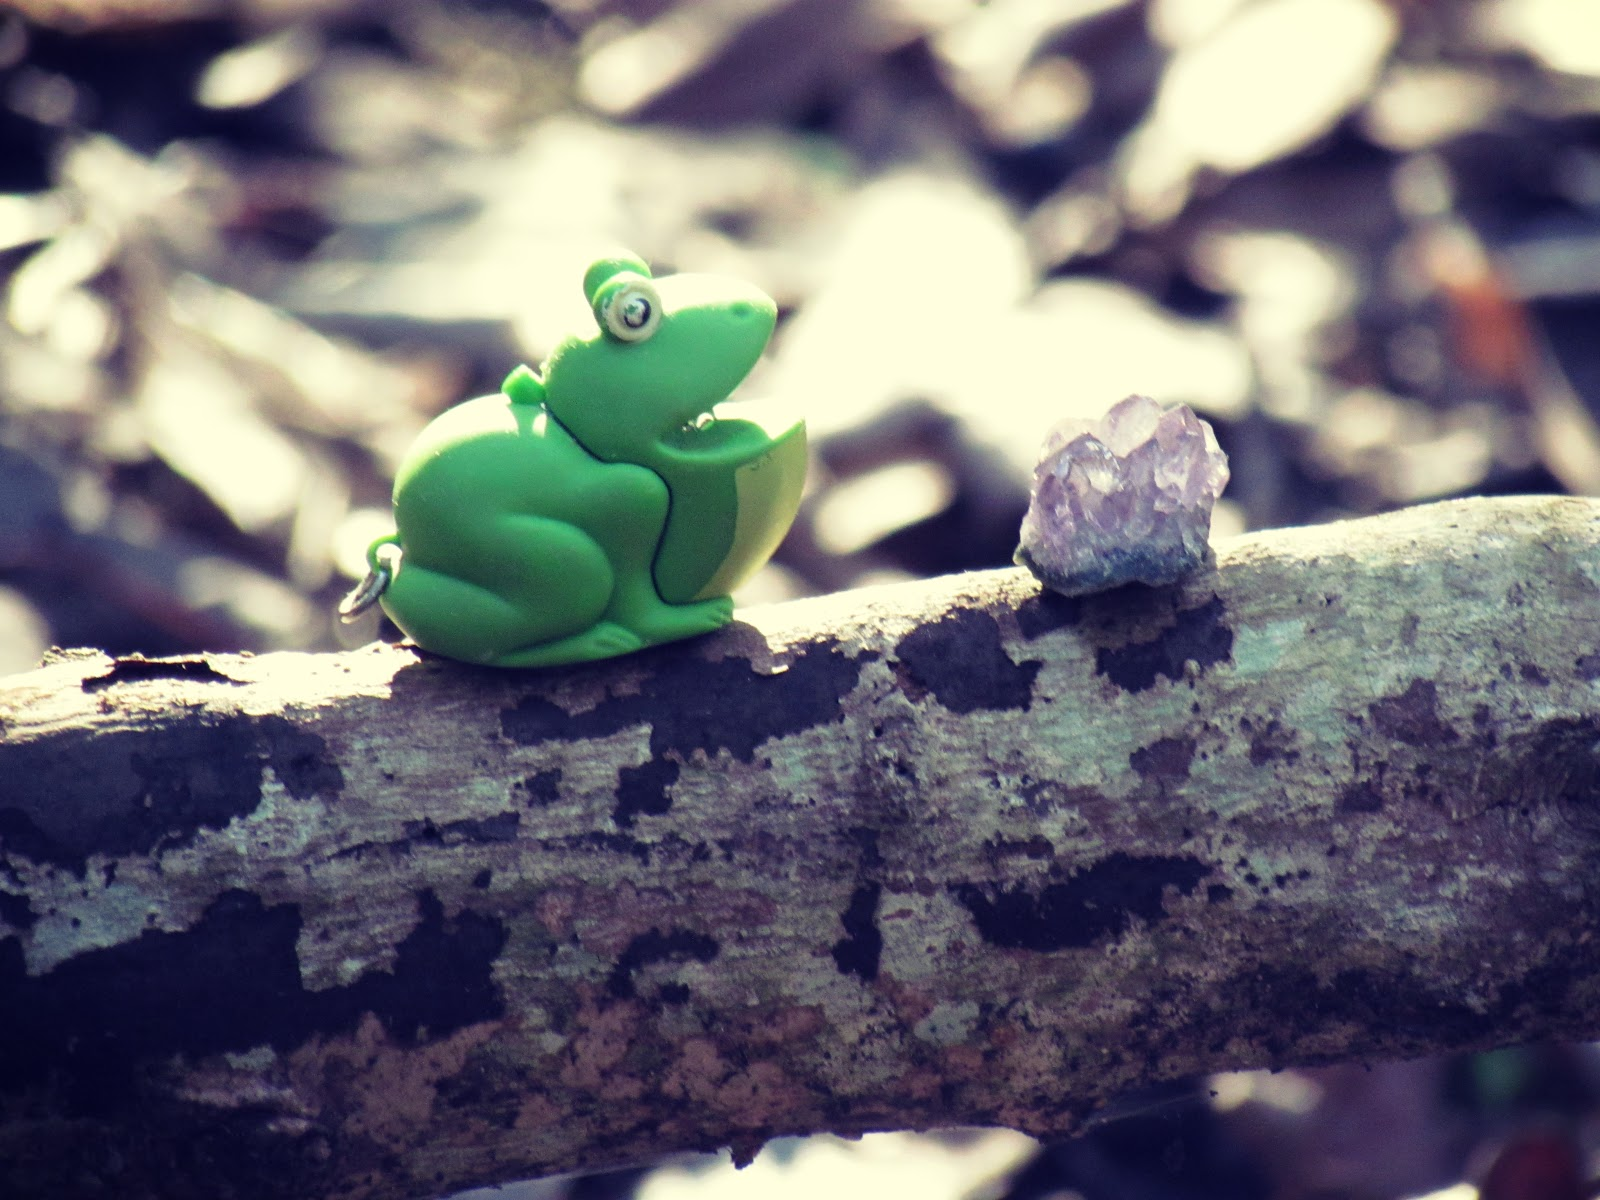 A frog sitting on a wooden log in the forest + good energy healing